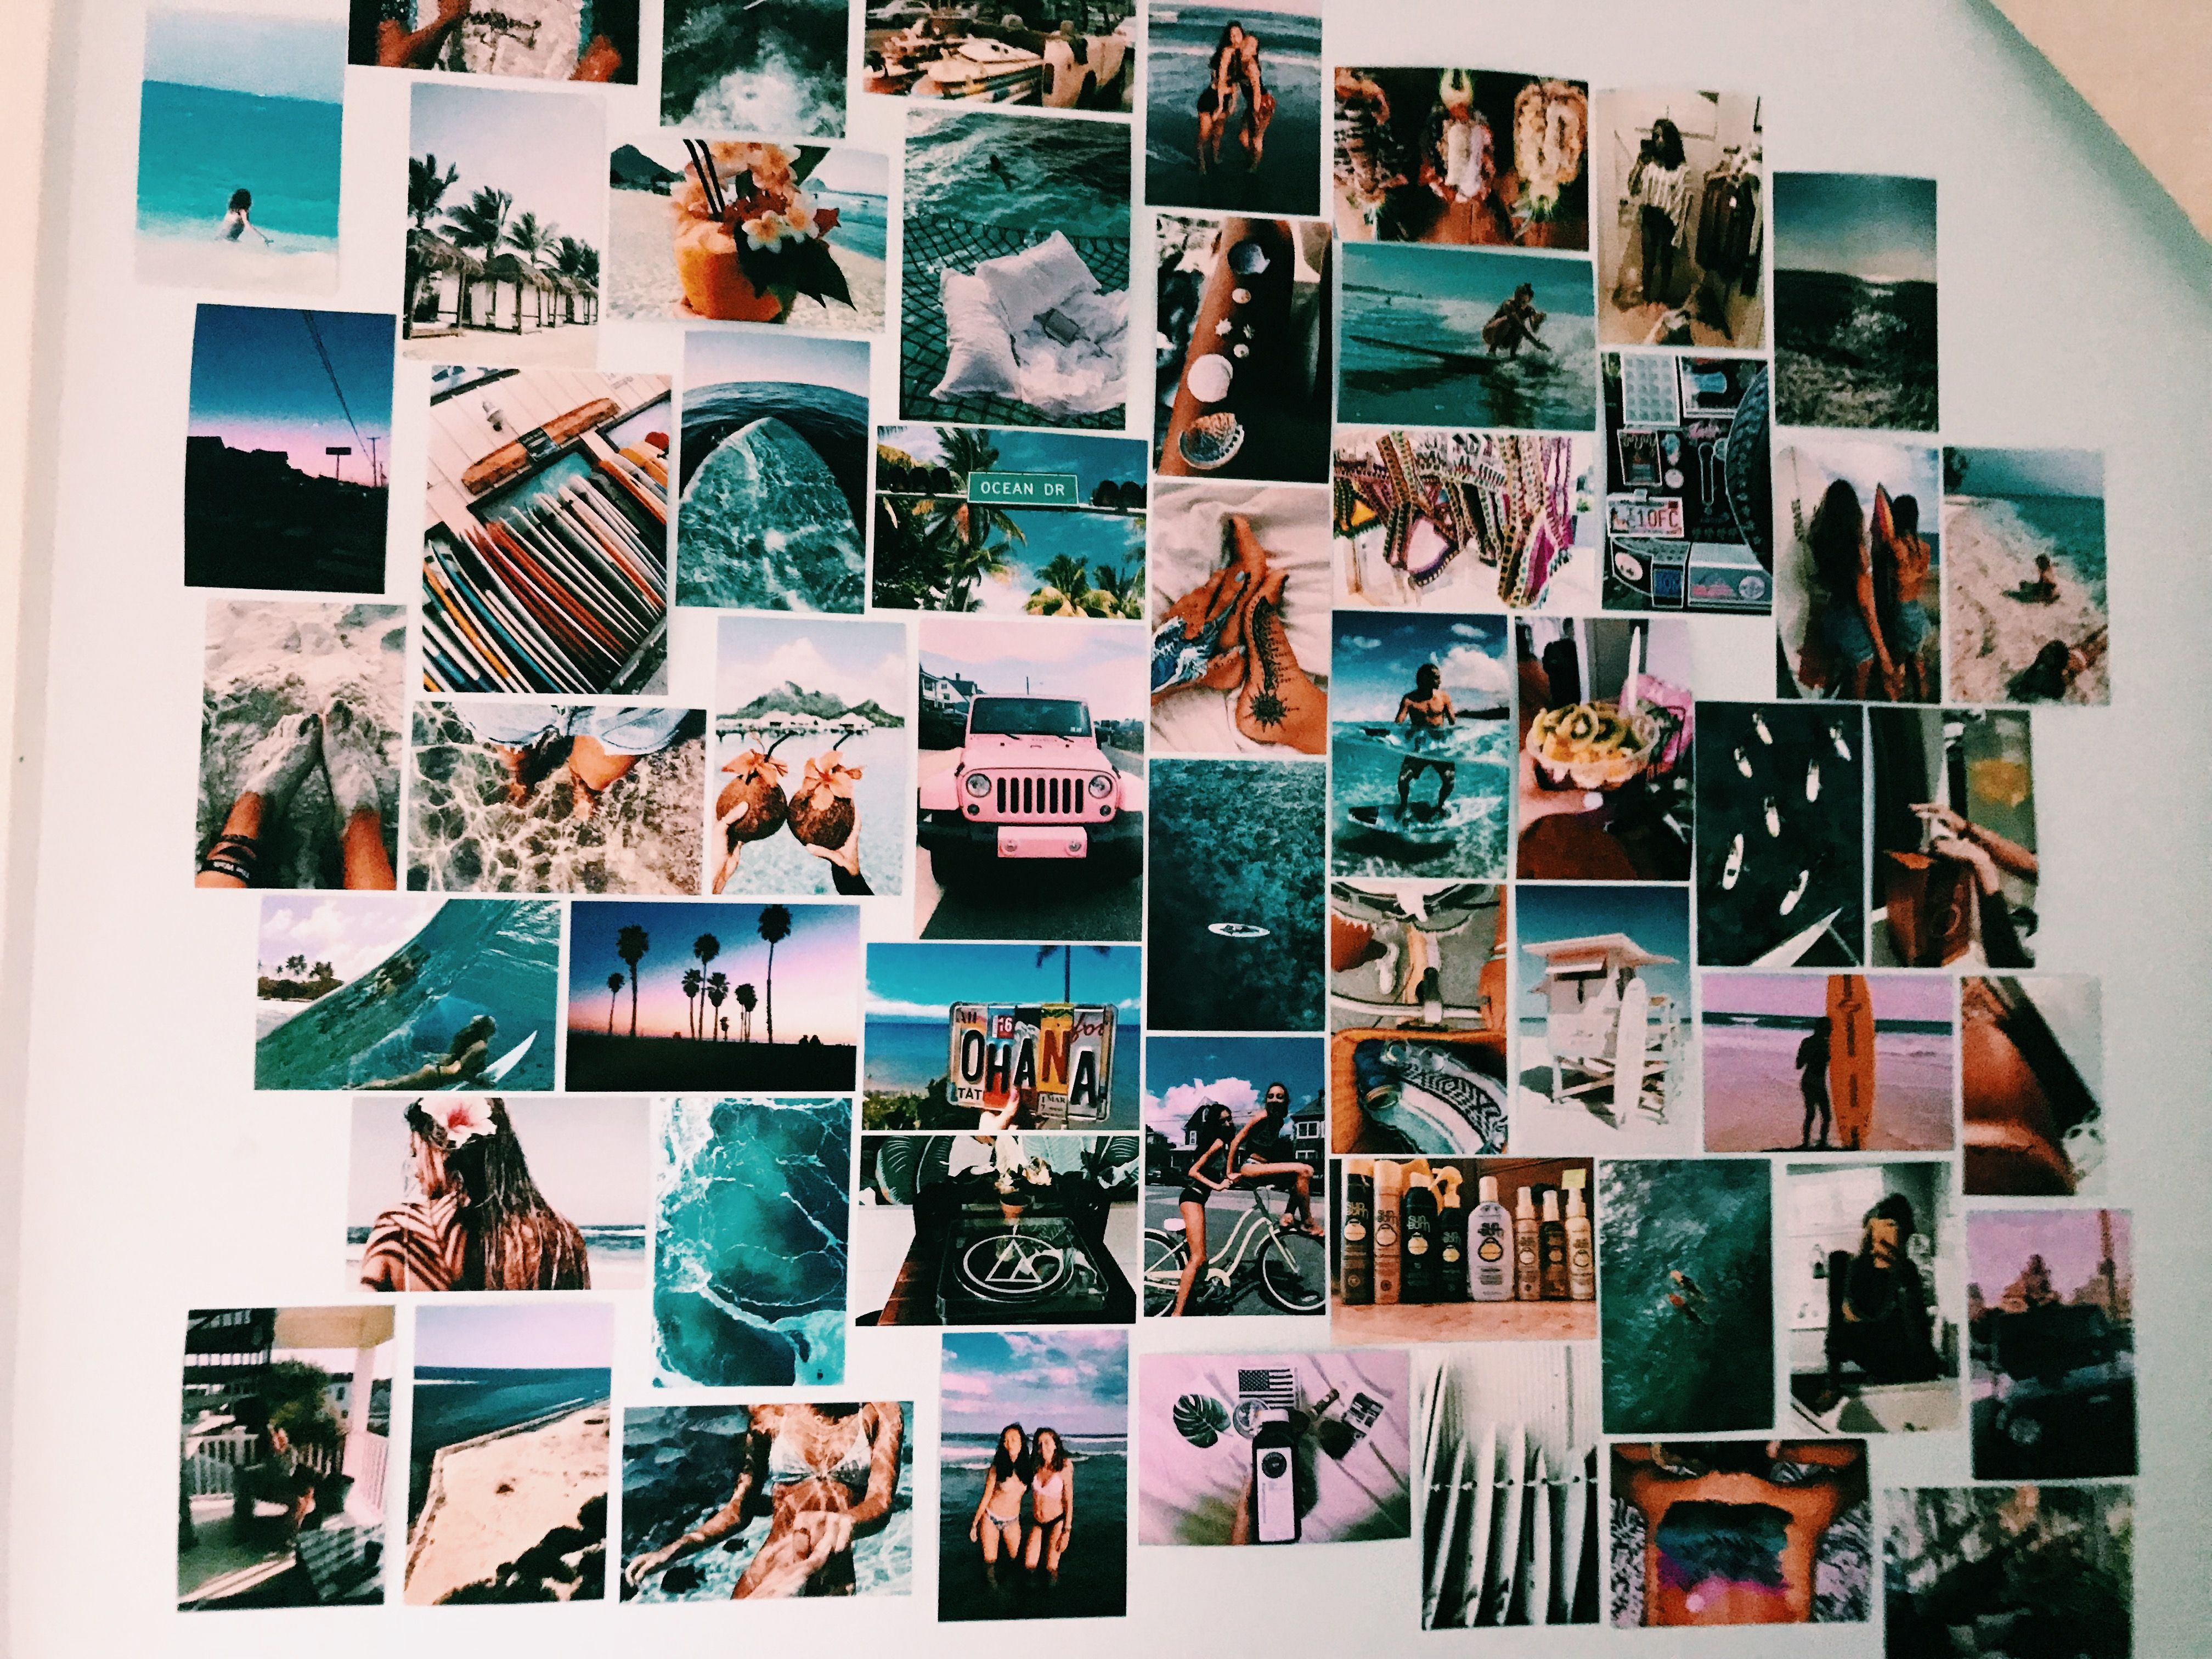 Pin By Georgie Raine On Beach Vibes Photo Walls Bedroom Surf Room Photo Collage